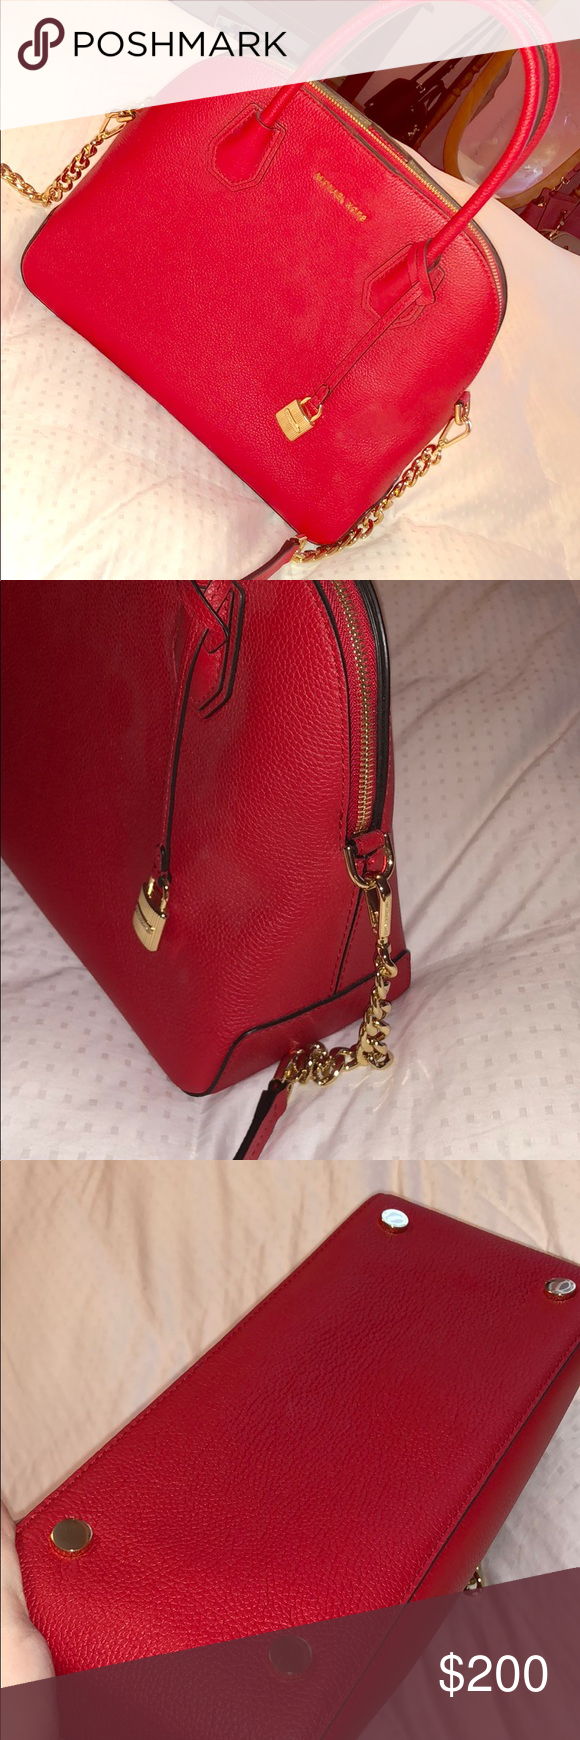 1ea922008529 Bright Red Large Mercer Leather Dome Michael Kors Brand new with tags  attached. Large size